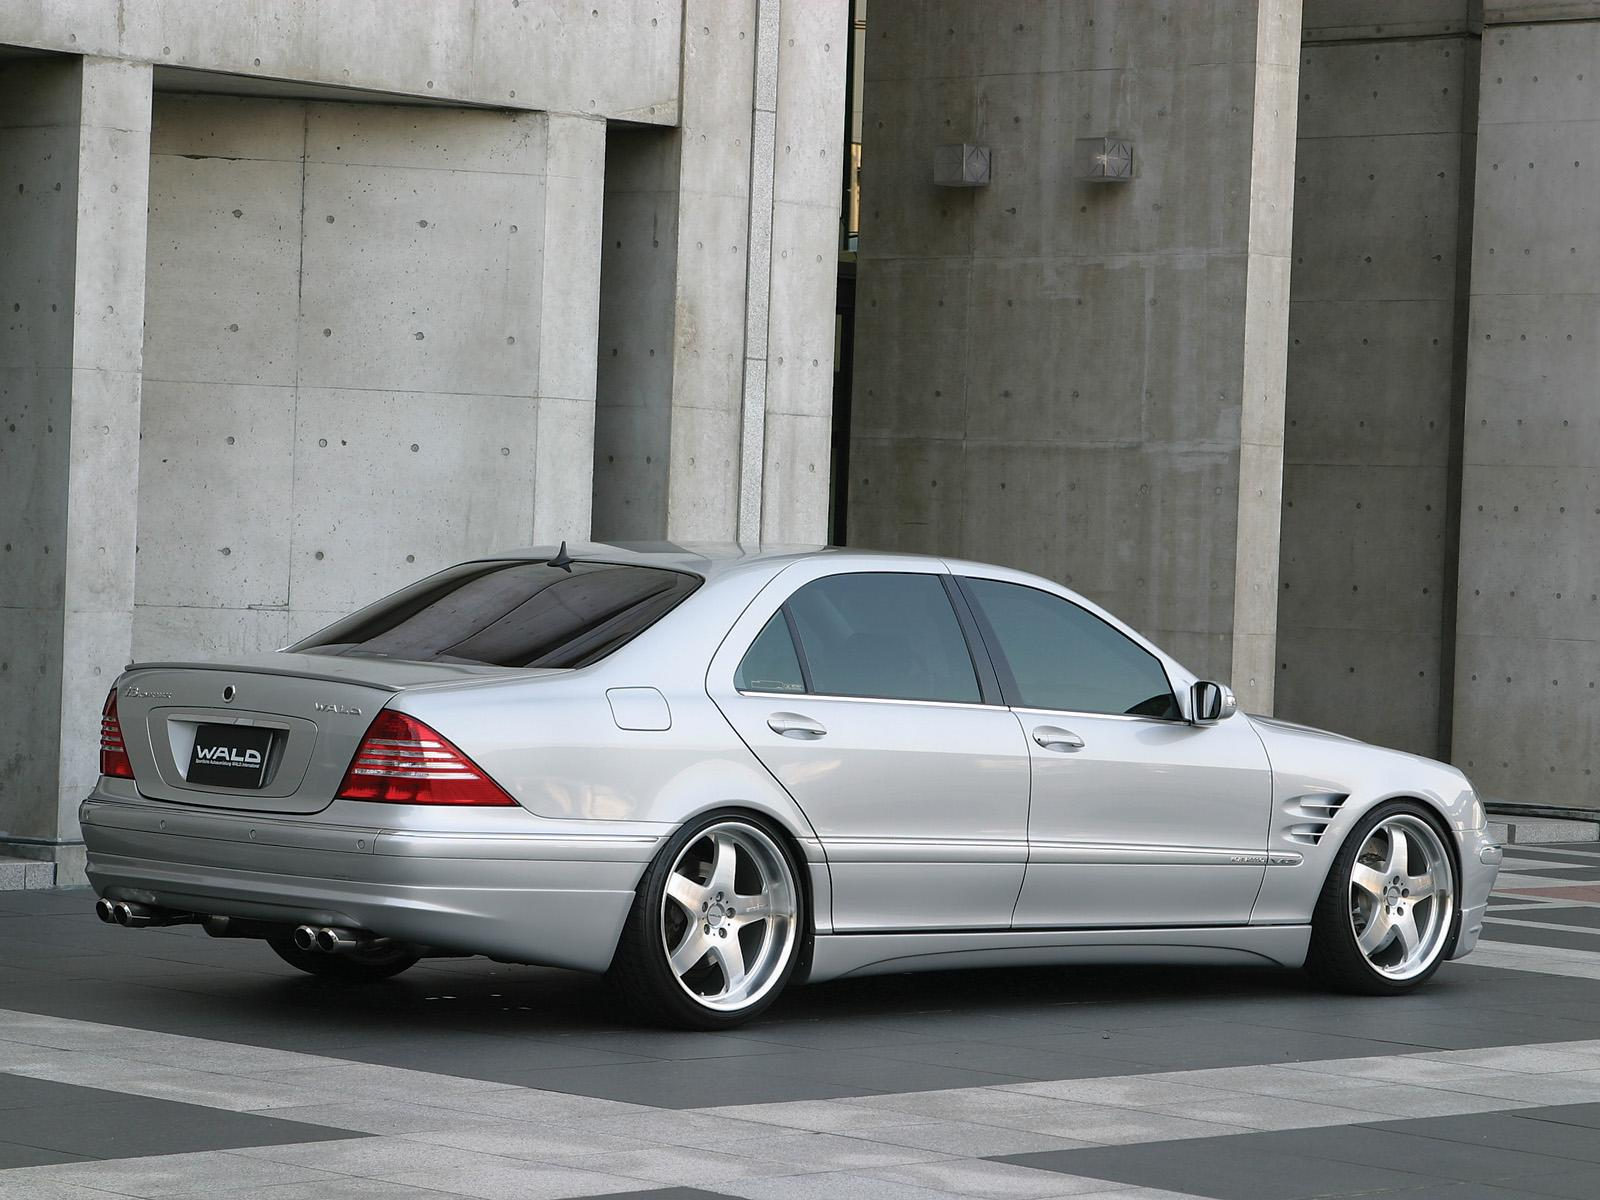 Wald Bercedes Benz S600 photo 26130